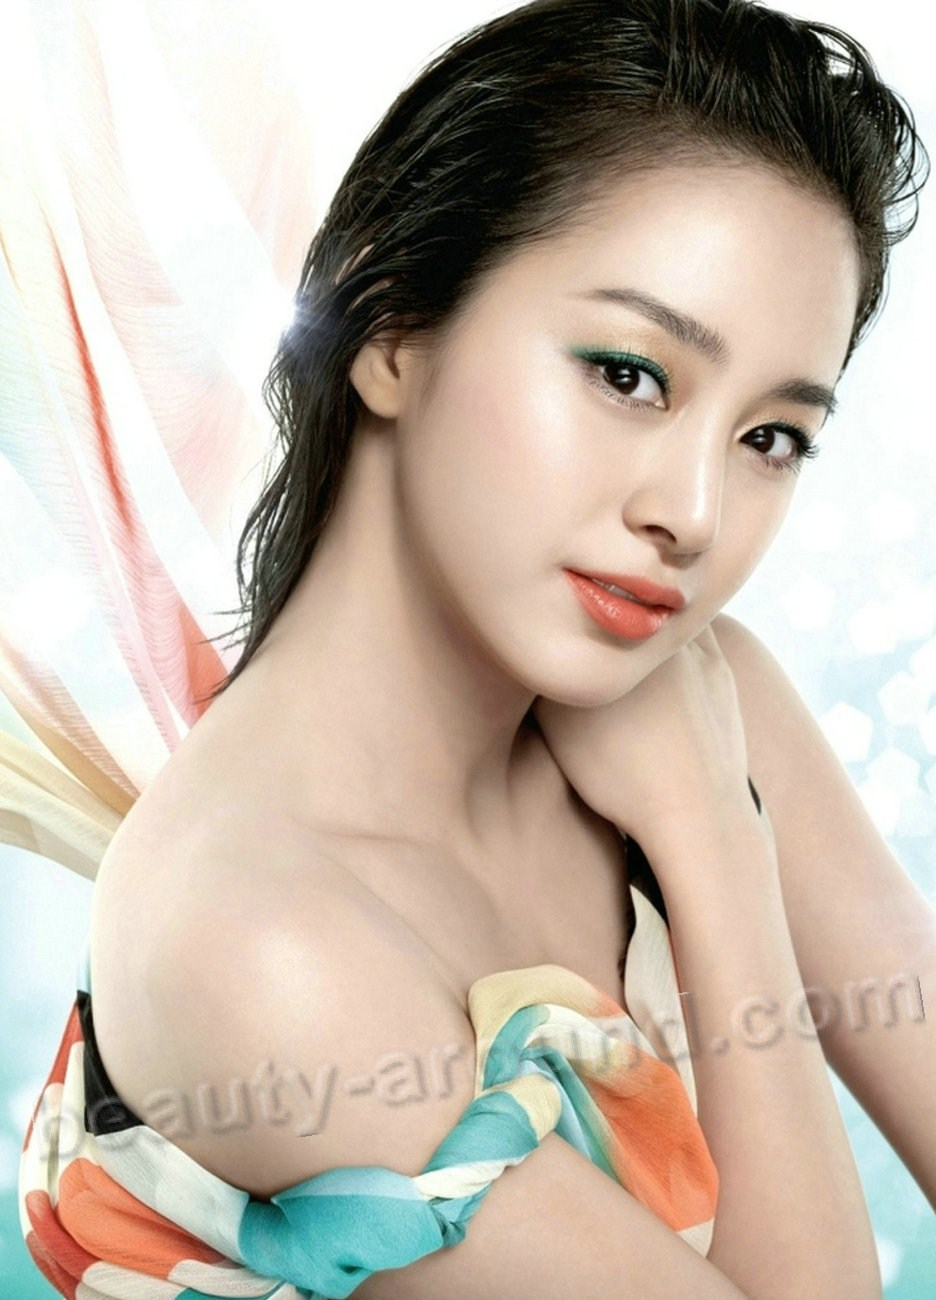 Top 10 Beautiful Korean Models Photo Gallery Outfit Girl Korea Kim Tae Hee Sexy Model Picture